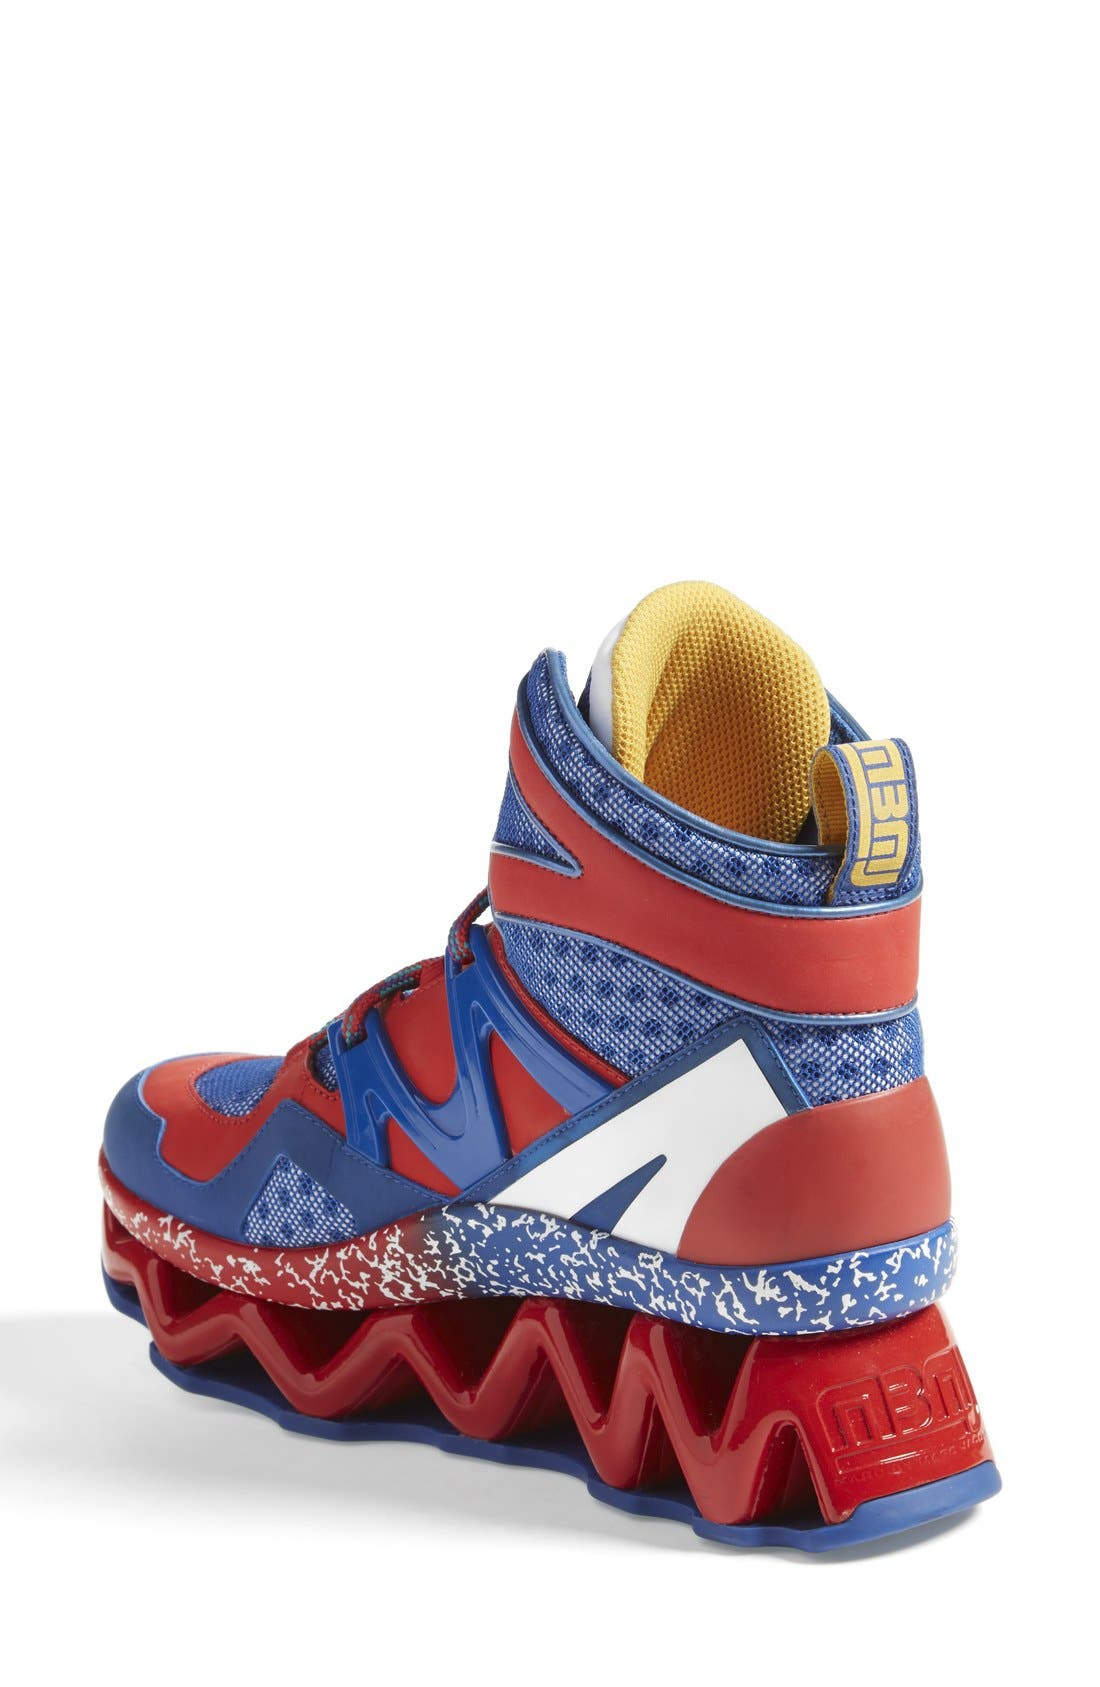 MARC BY MARC JACOBS 'Ninja' Sneaker,                             Alternate thumbnail 3, color,                             403